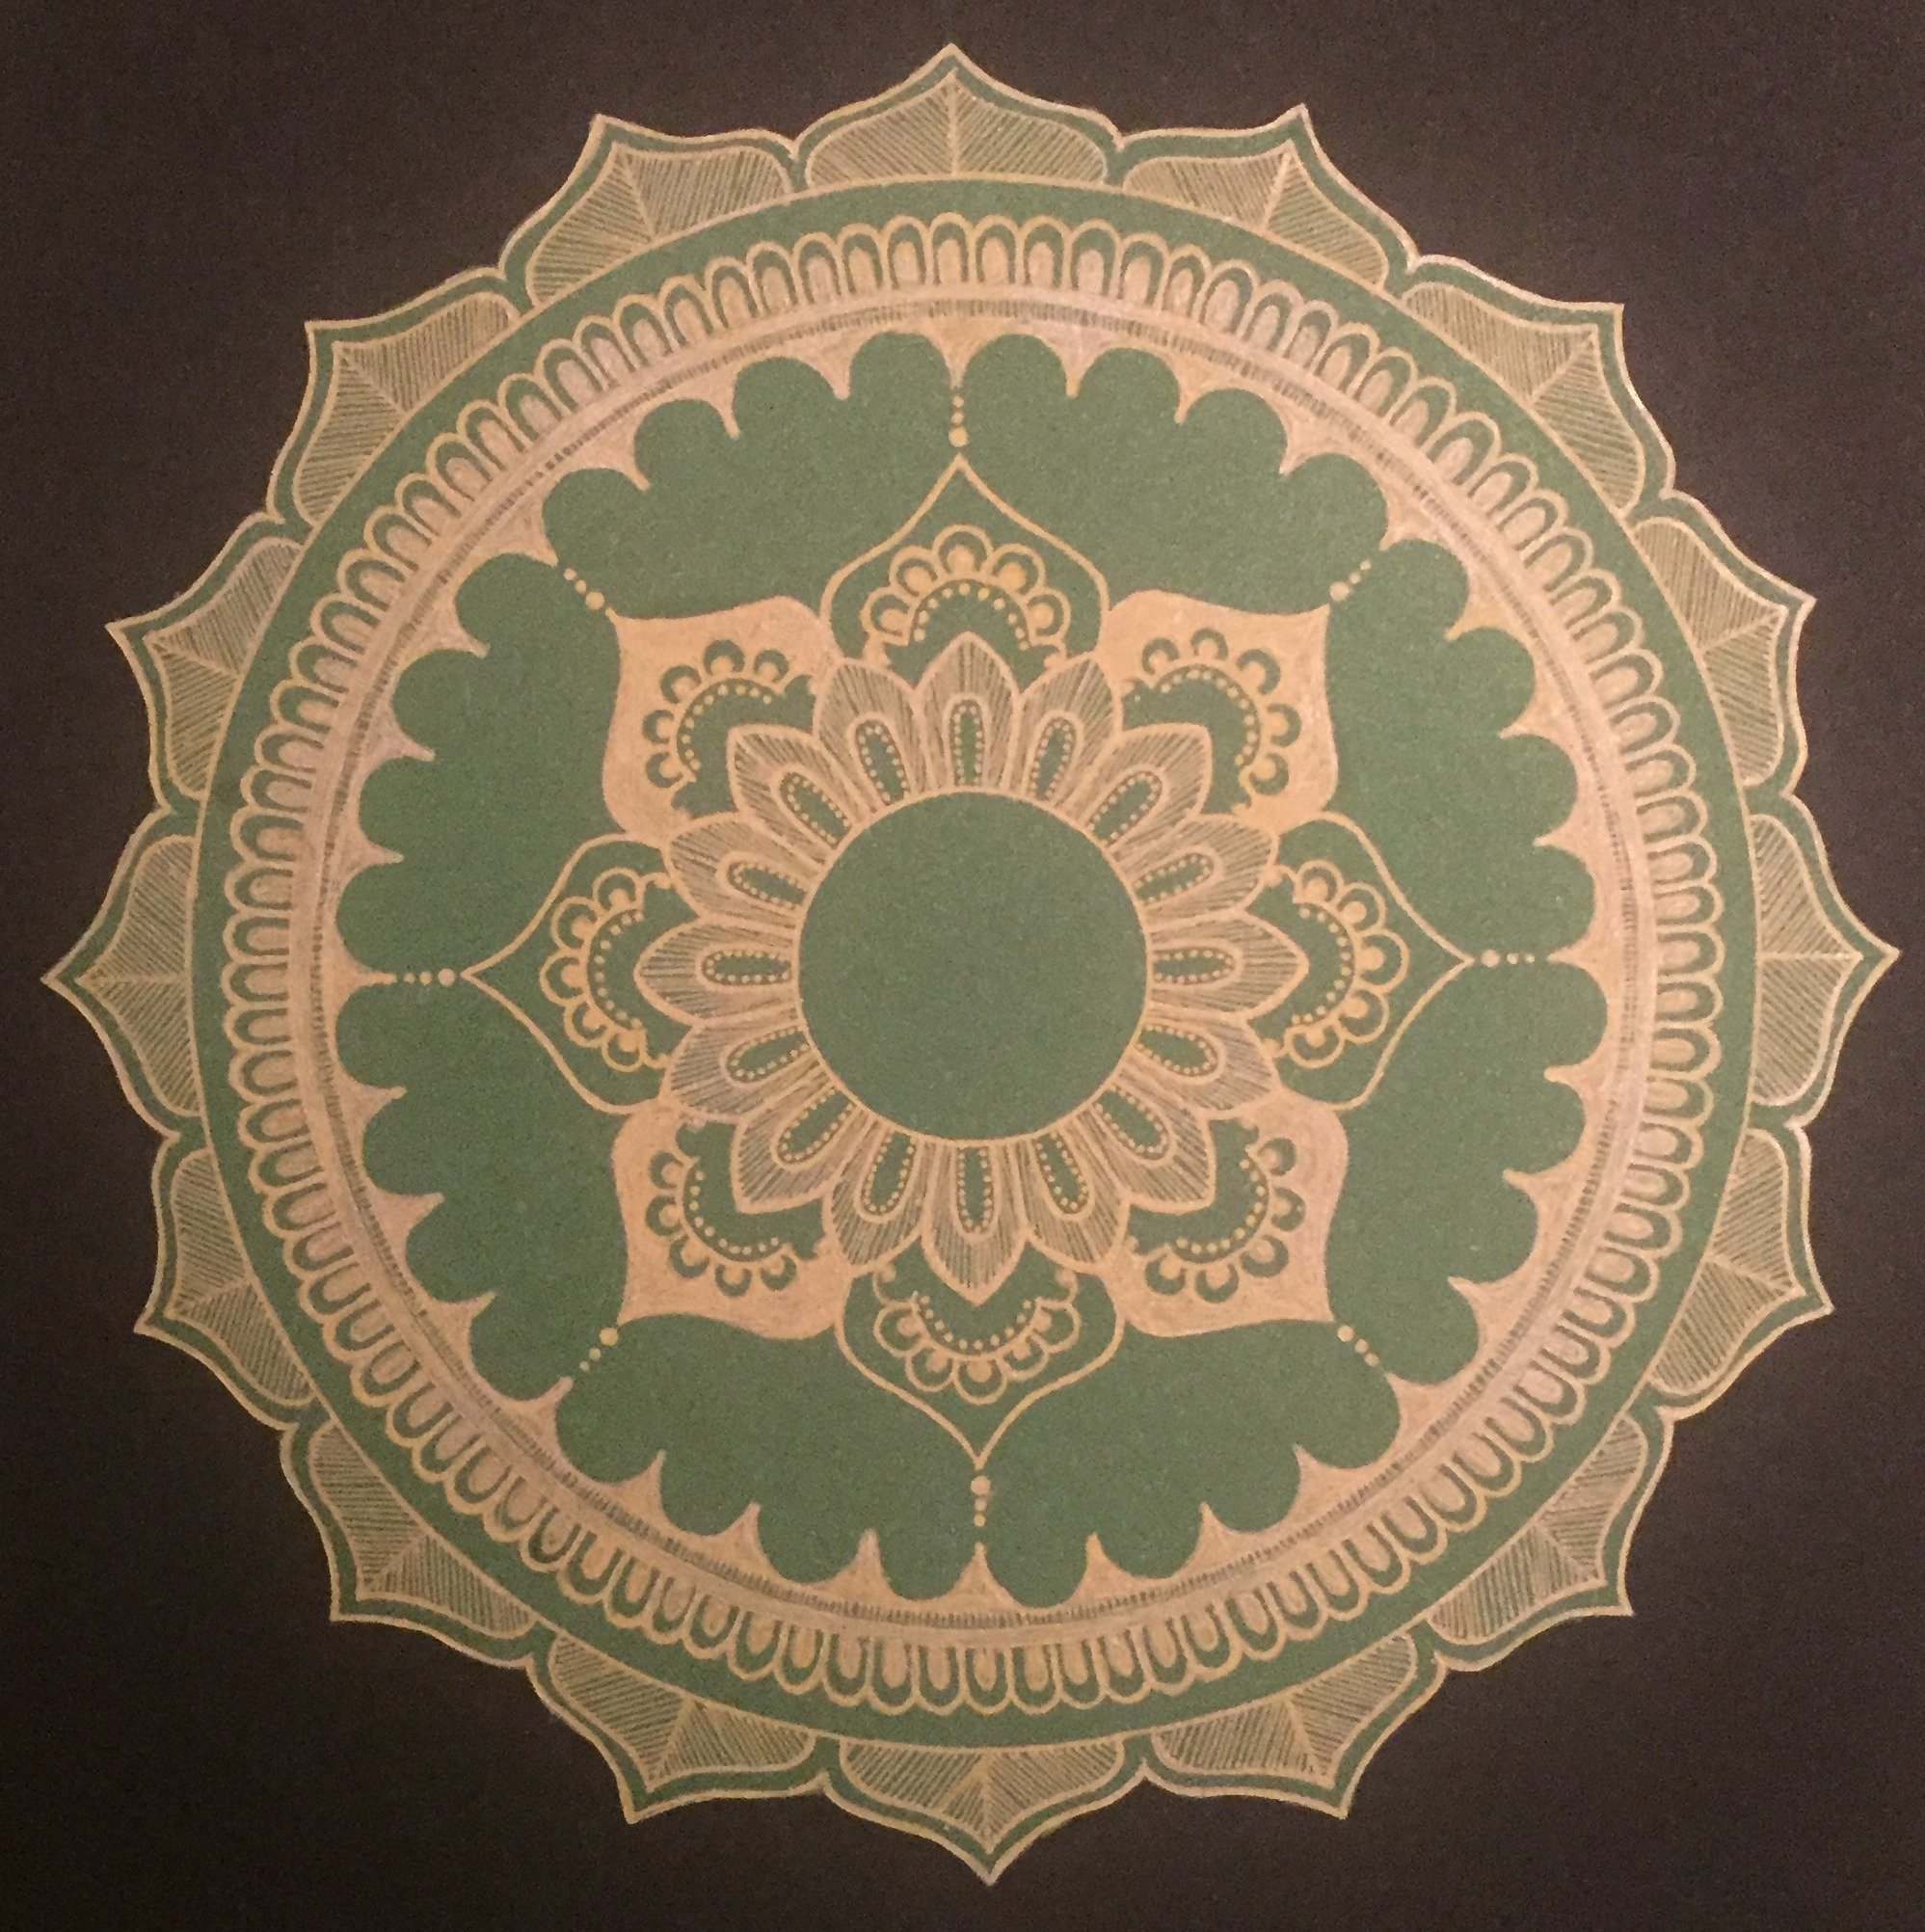 Rabina Byanjankar Shakya; Golden Lotus, 2017, Original Painting Other, 210 x 297 mm. Artwork description: 241 Golden lotus cut out Mandala. Hand drawn using gold color gel pen on green metallic sheet cutout and pasted on black A4 size paper. Color green is associated with health, prosperity, and harmony. Gold represents wealth, success and status. ...